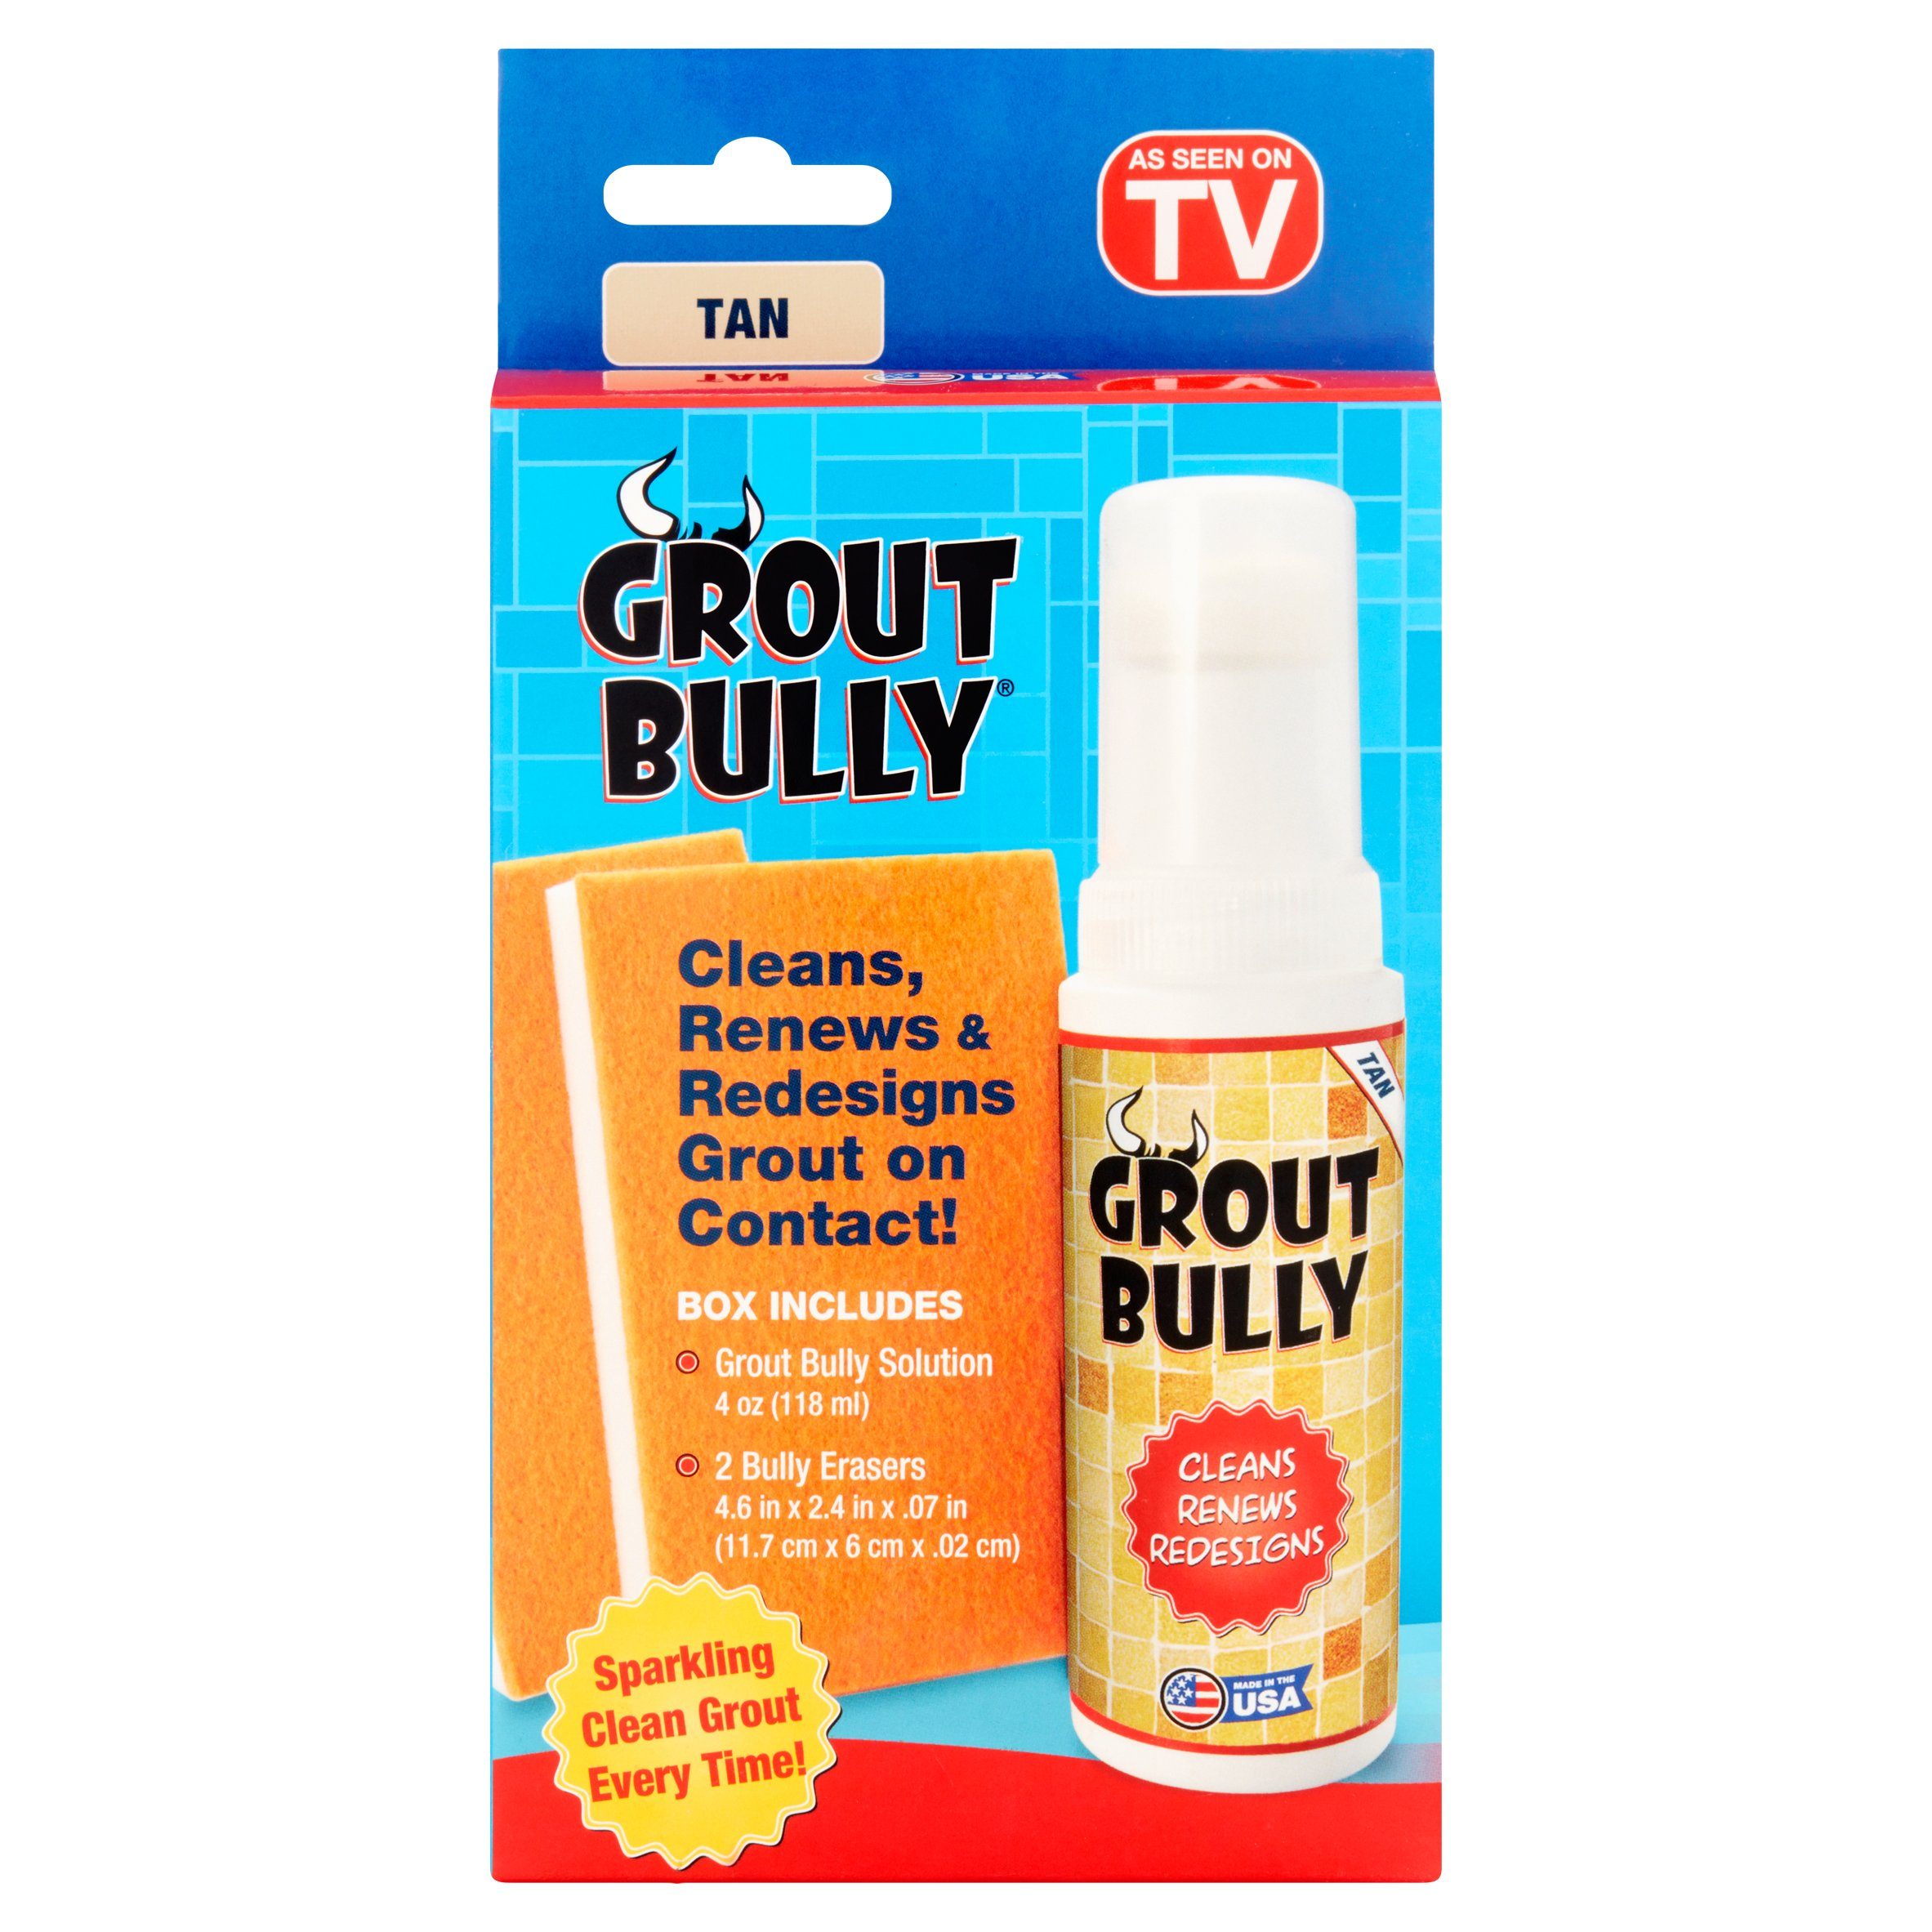 Grout Bully Tan Tile Cleaner